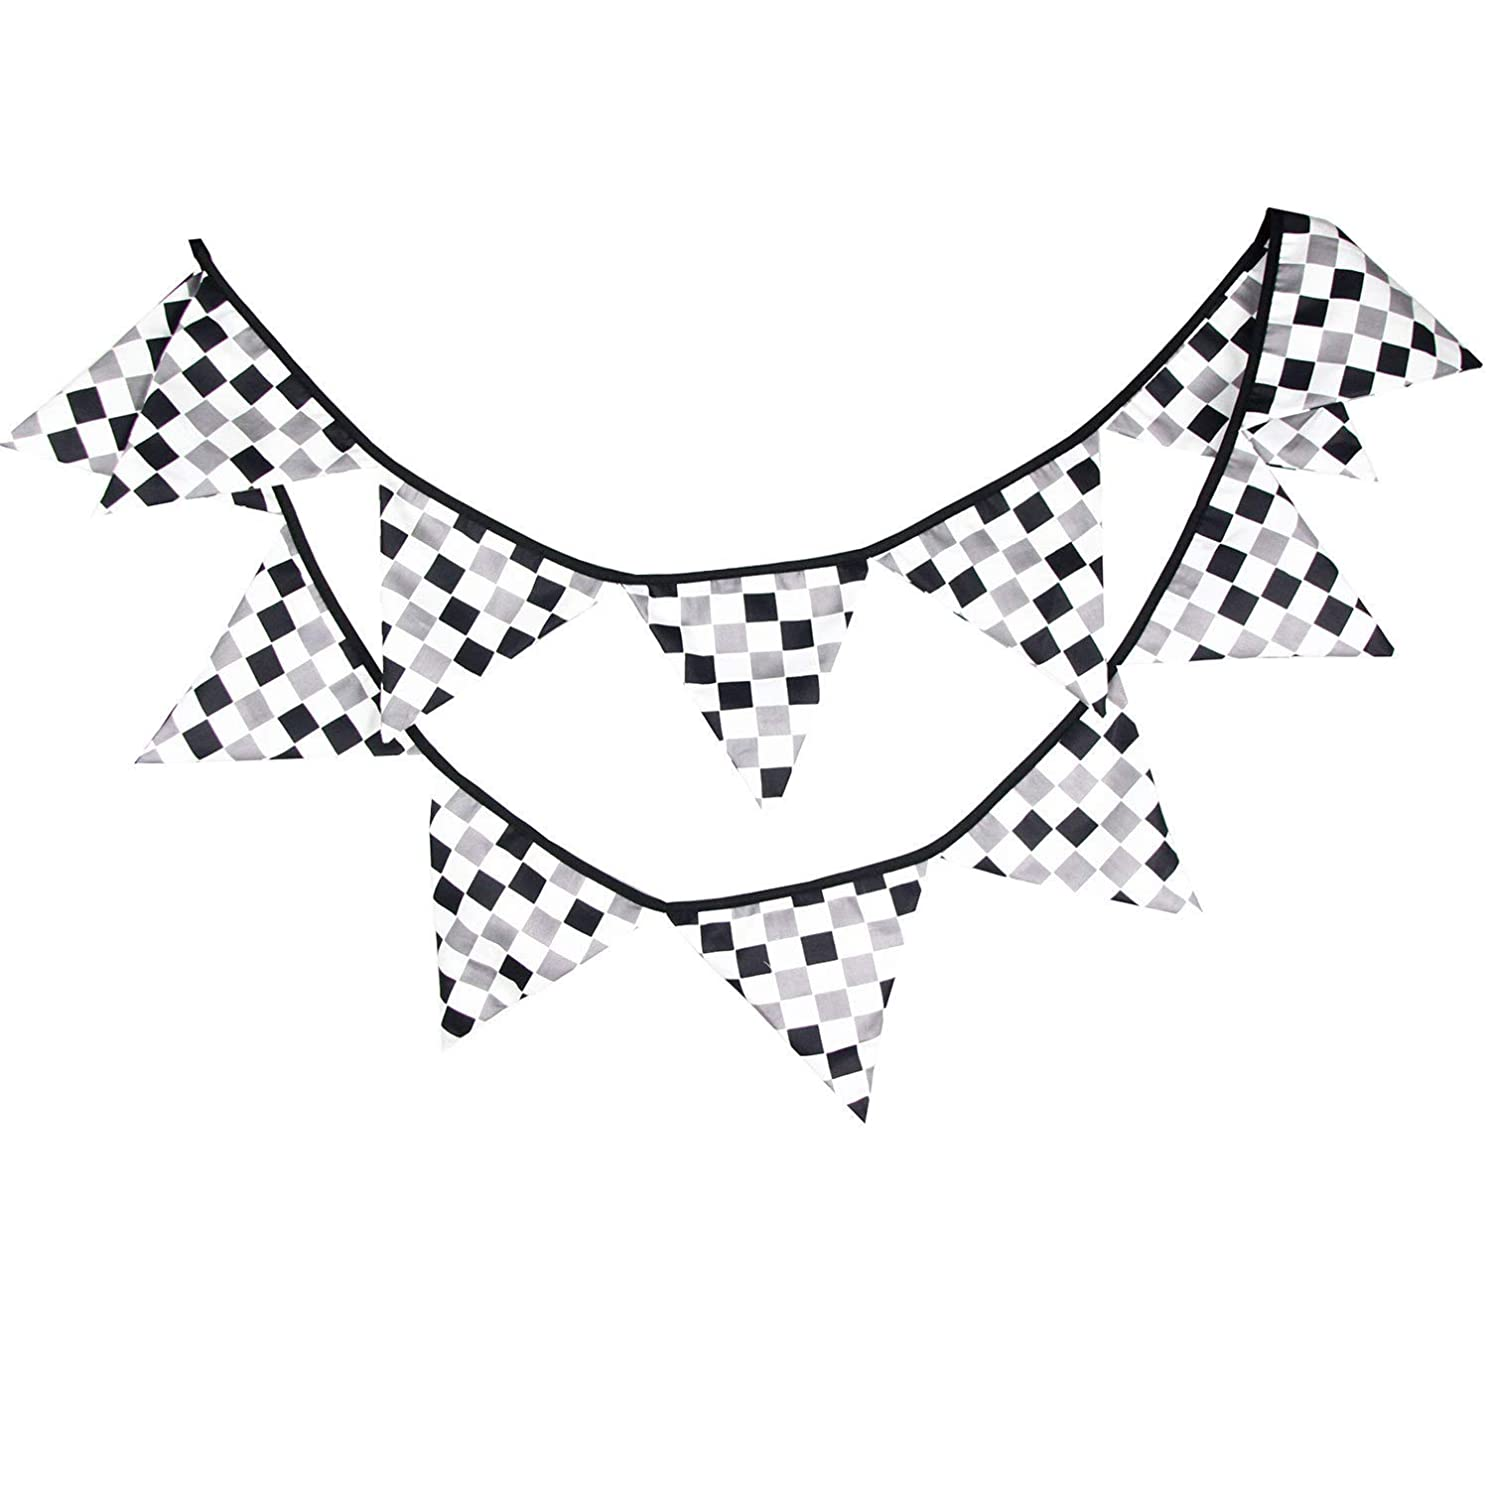 10 Feet Black & White Checkered Plaid Racing Flag Party Banner Cotton Fabric Pennant Bunting for Race Car Theme Party Wedding Birthday Sports Nursery Dorm Hanging Decoration